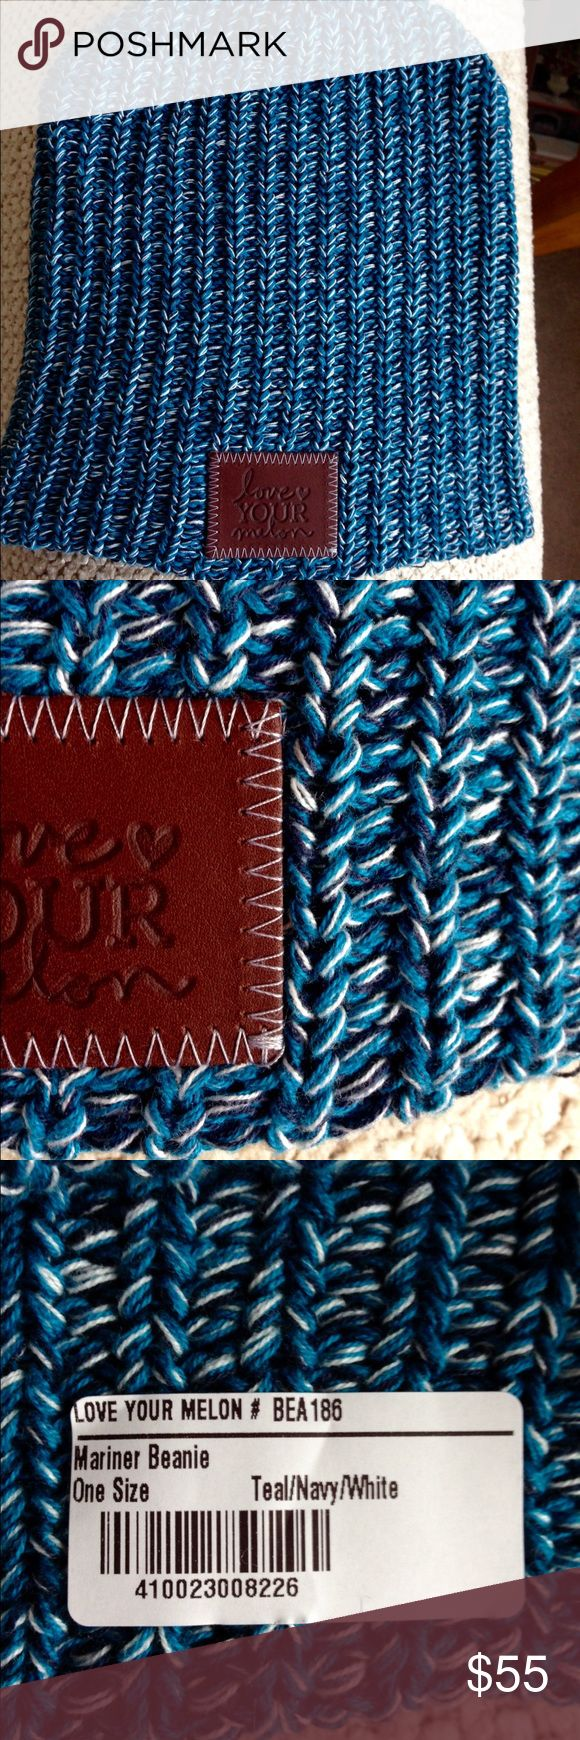 LOVE YOUR MELON BEANIE This is Love Your Melon in Mariner. Adorable beanie in teal, navy, and white. Super cozy and comfortable. Never worn. Love this but I went a little crazy with the spending. Love Your Melon Accessories Hats